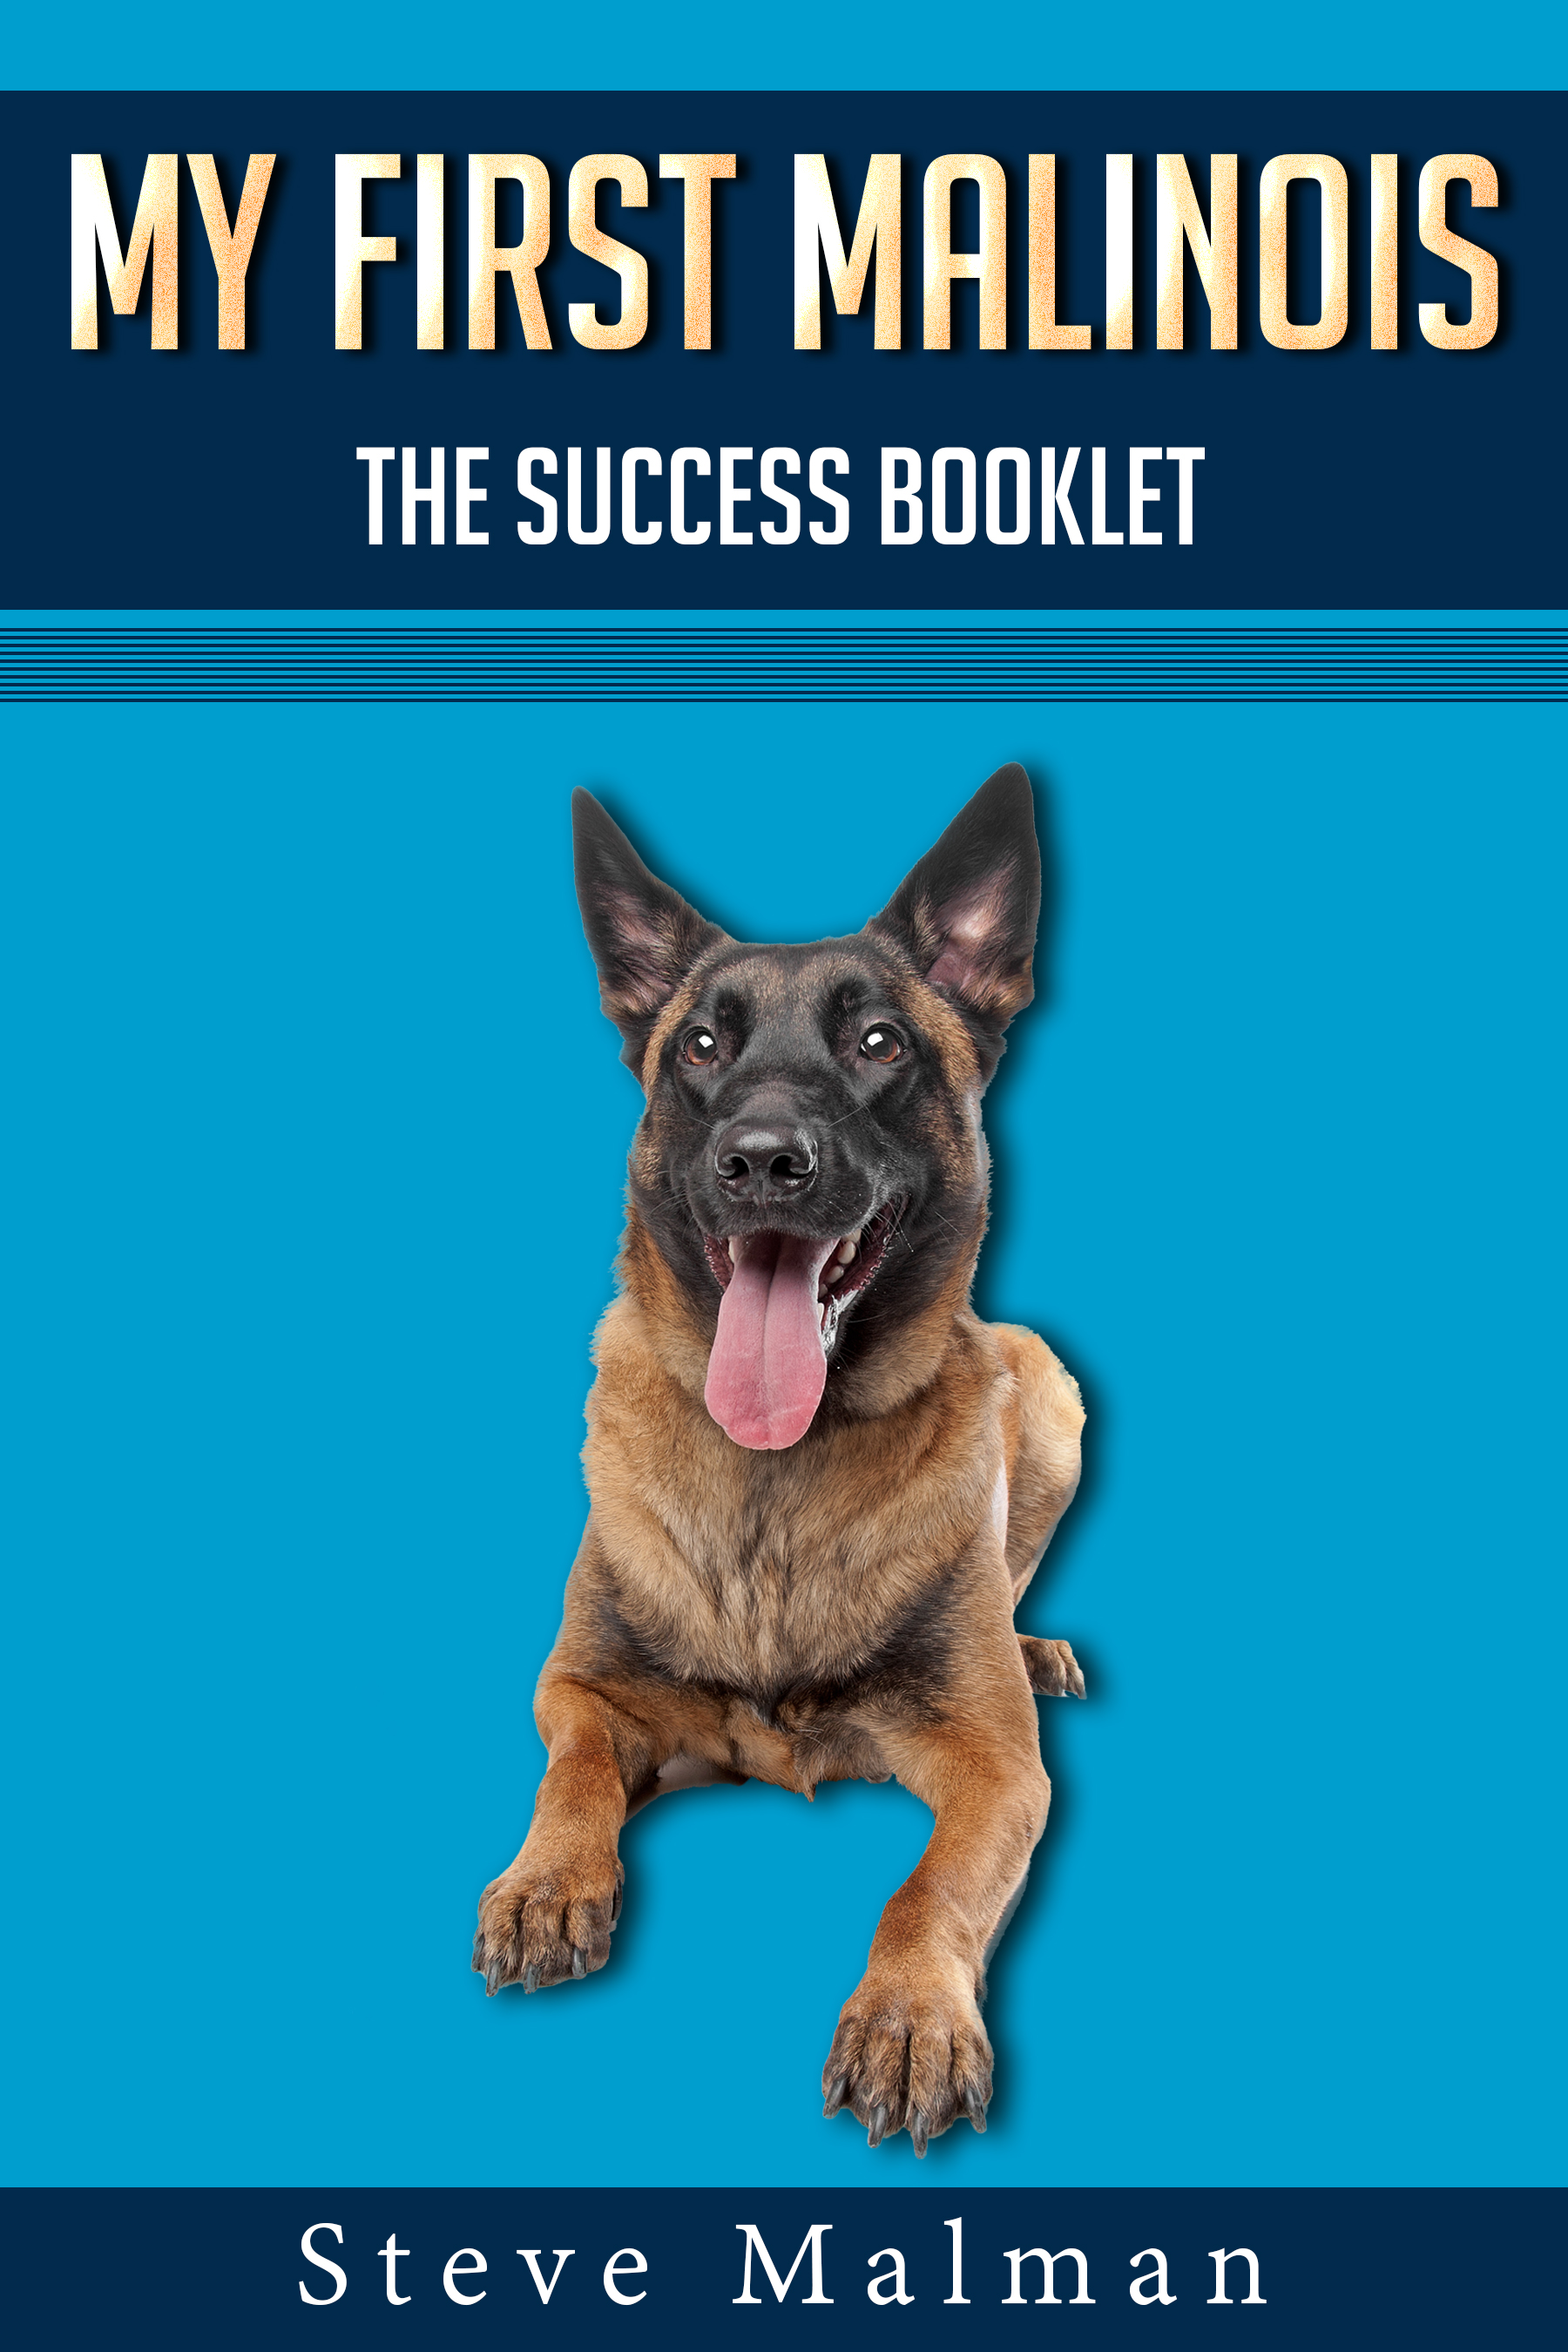 Malinois Success Booklet